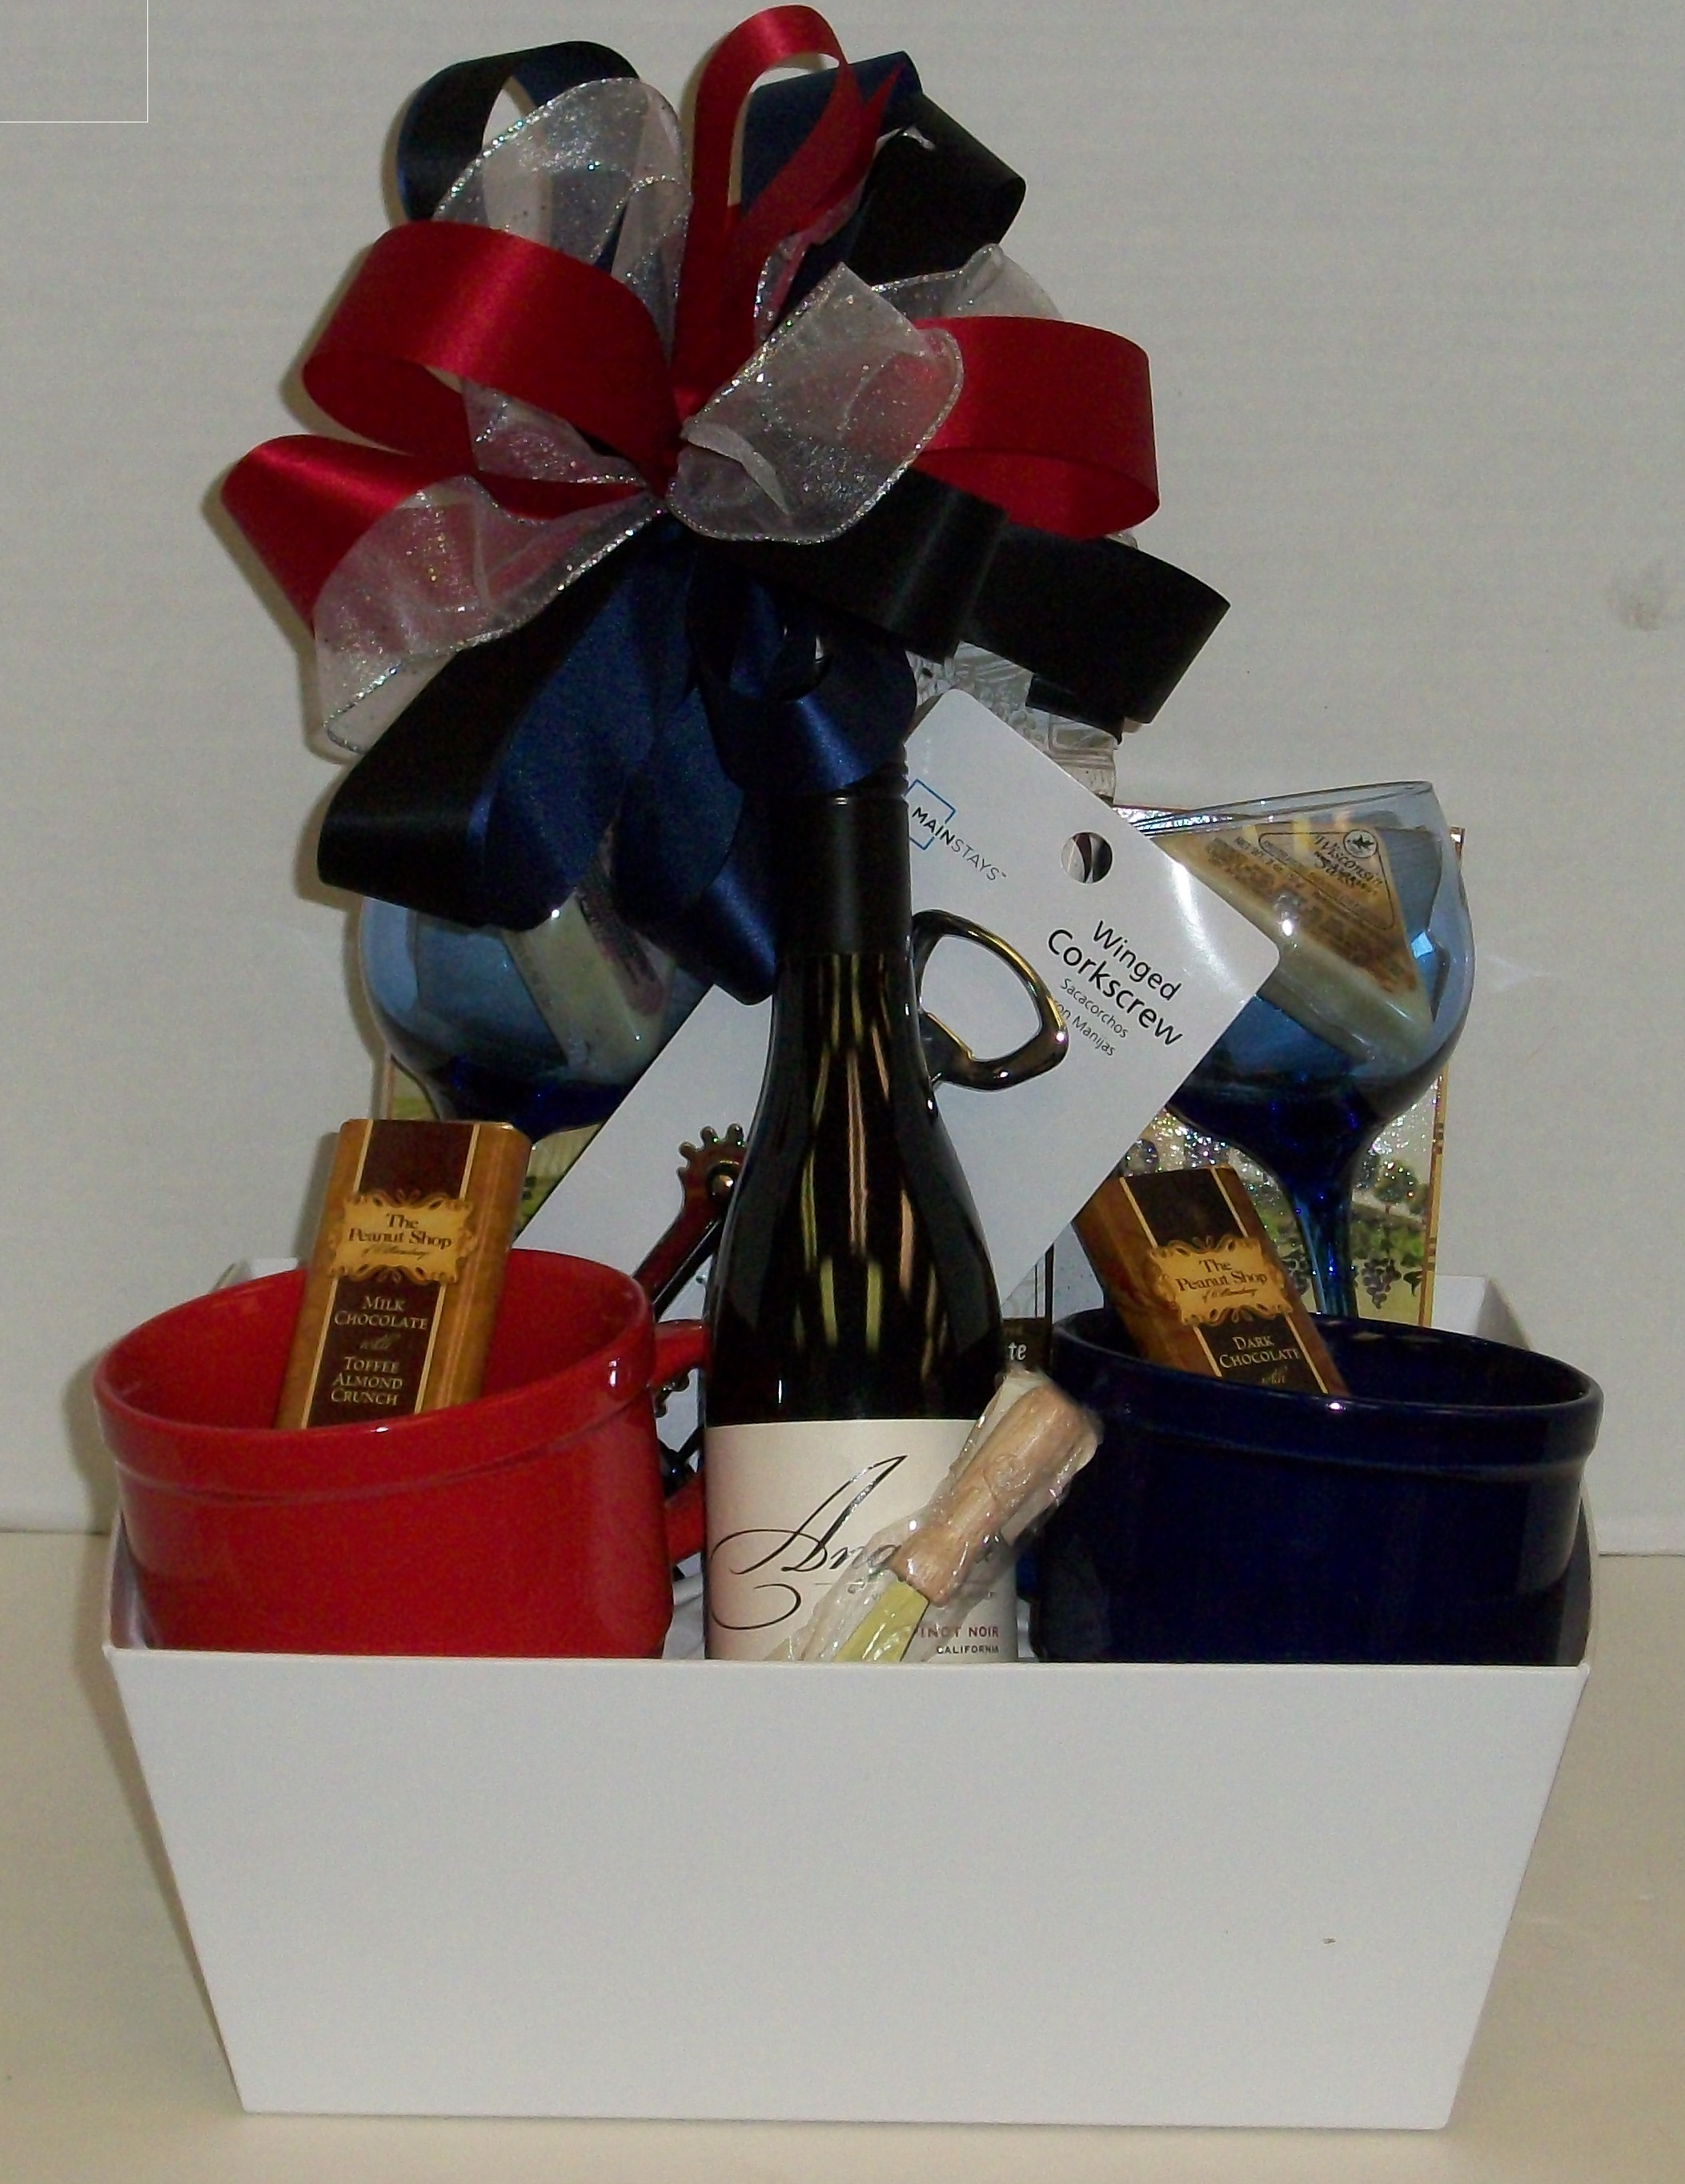 Gift basket creations custom baskets market trays for every date night delight negle Choice Image